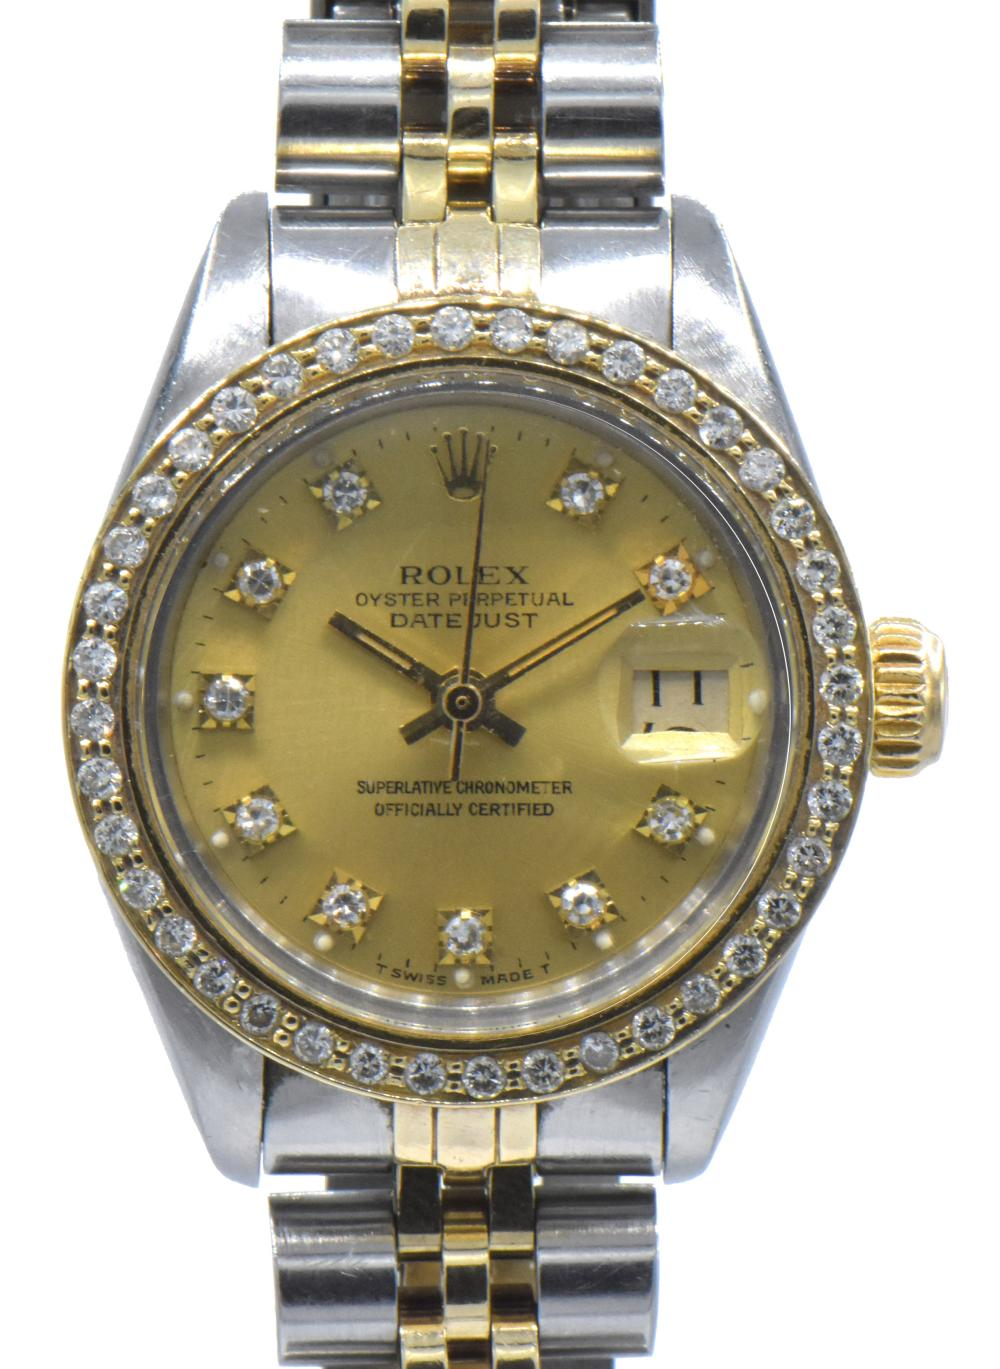 Rolex Oyster Perpetual Datejust Wristwatch